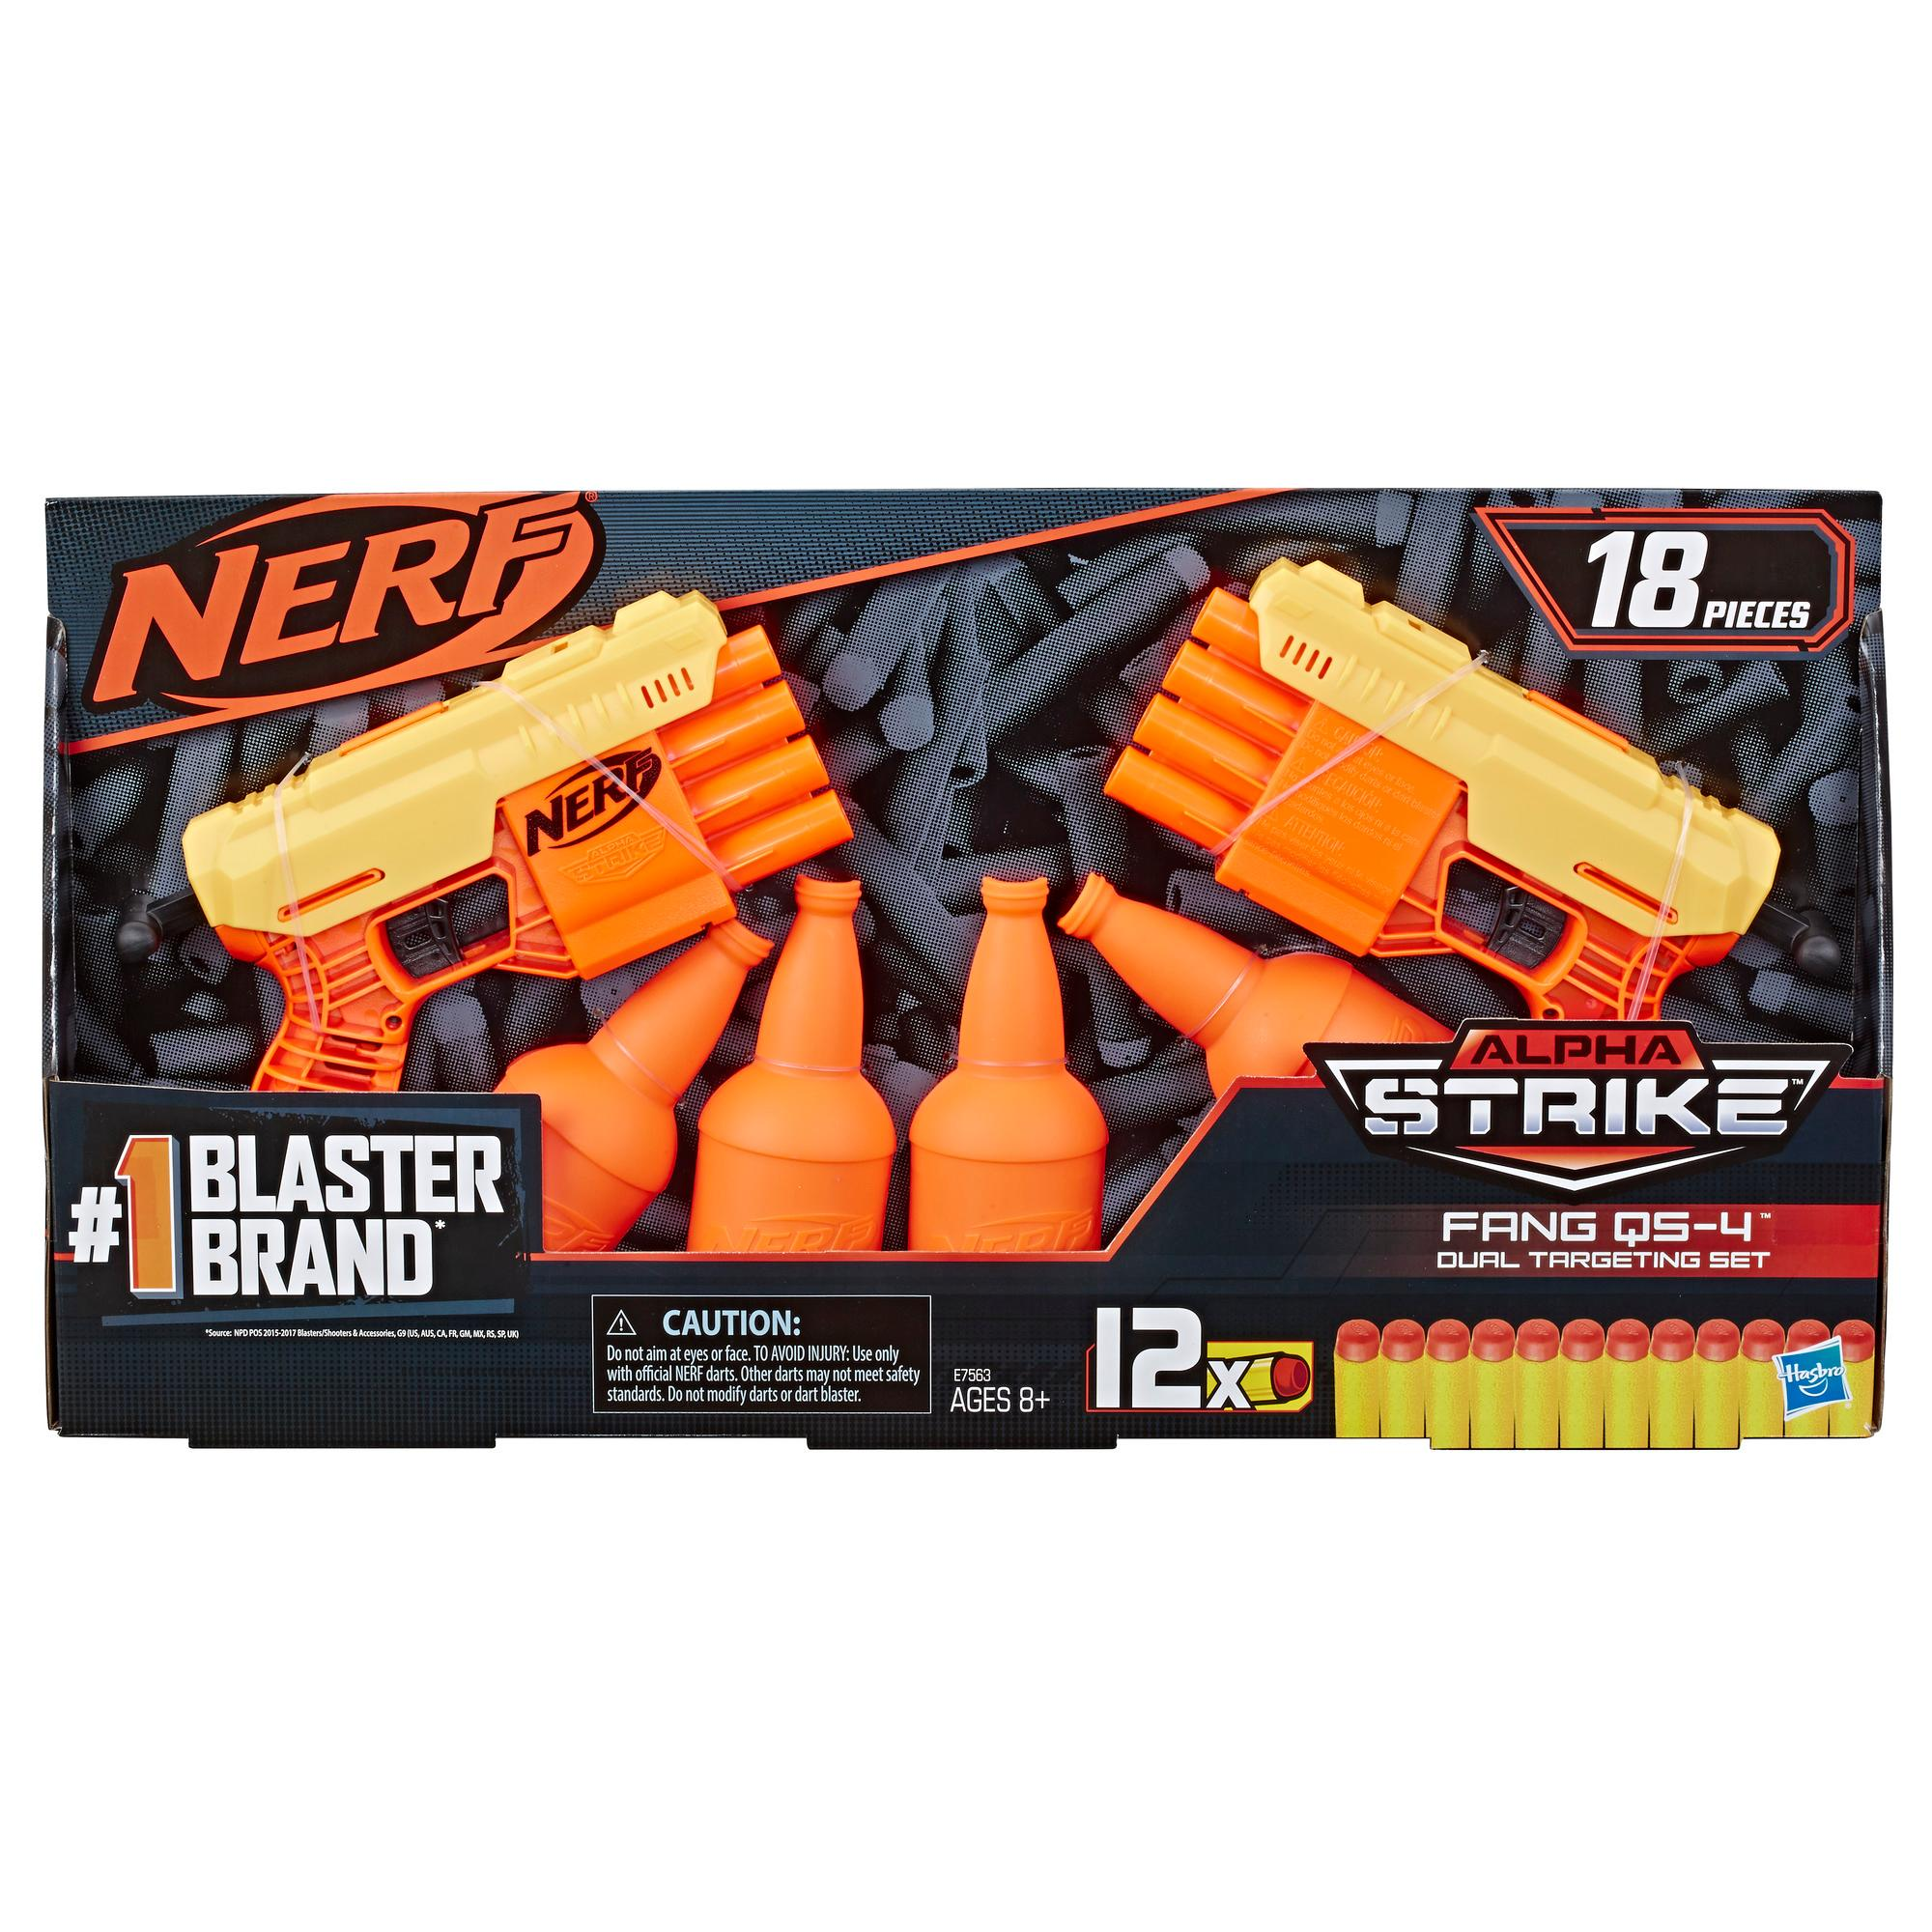 NER ALPHA STRIKE FANG QS 4 DUAL TARGETING SET